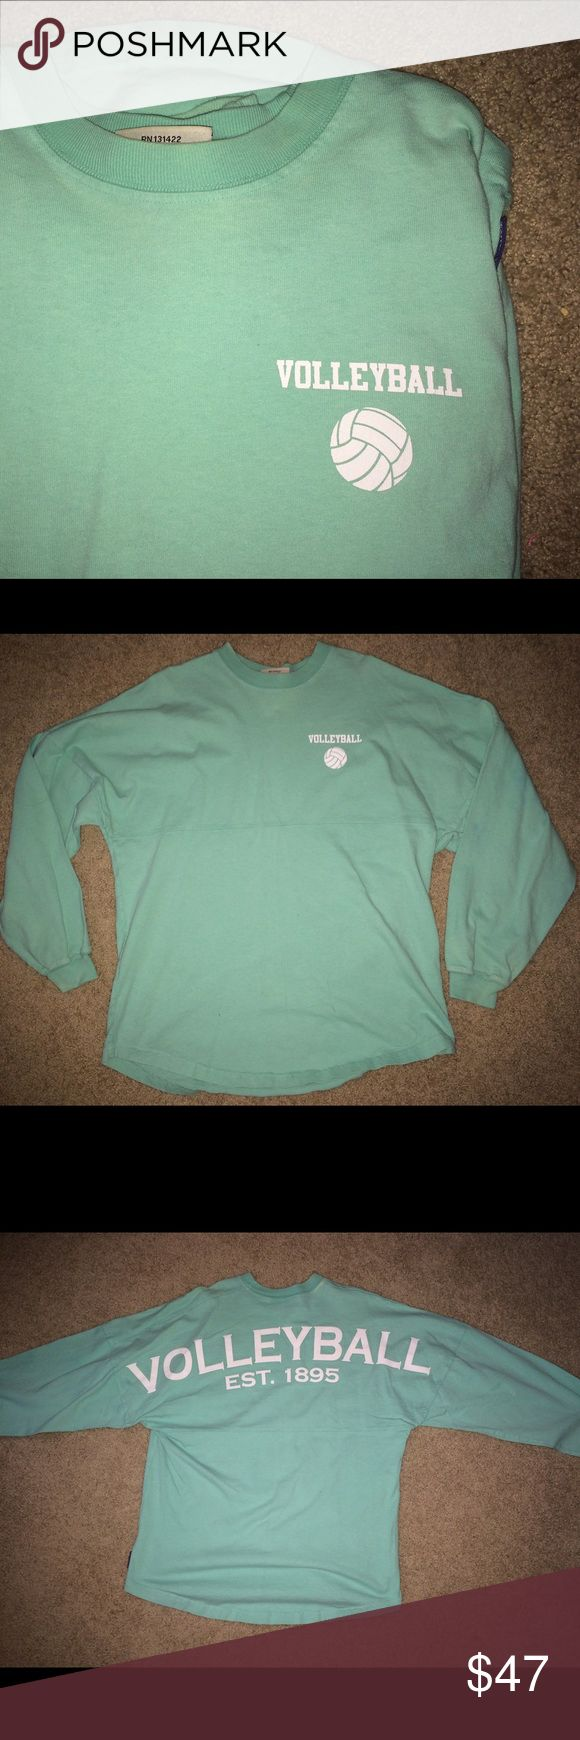 Spirit jersey volleyball long sleeve This long sleeve is super comfy and very cute! I love these types of shirts Suitable for just being at home or casual :) Mint green/teal color. Small bleach marks from wash but hardly noticeable! Spirit Tops Tees - Long Sleeve